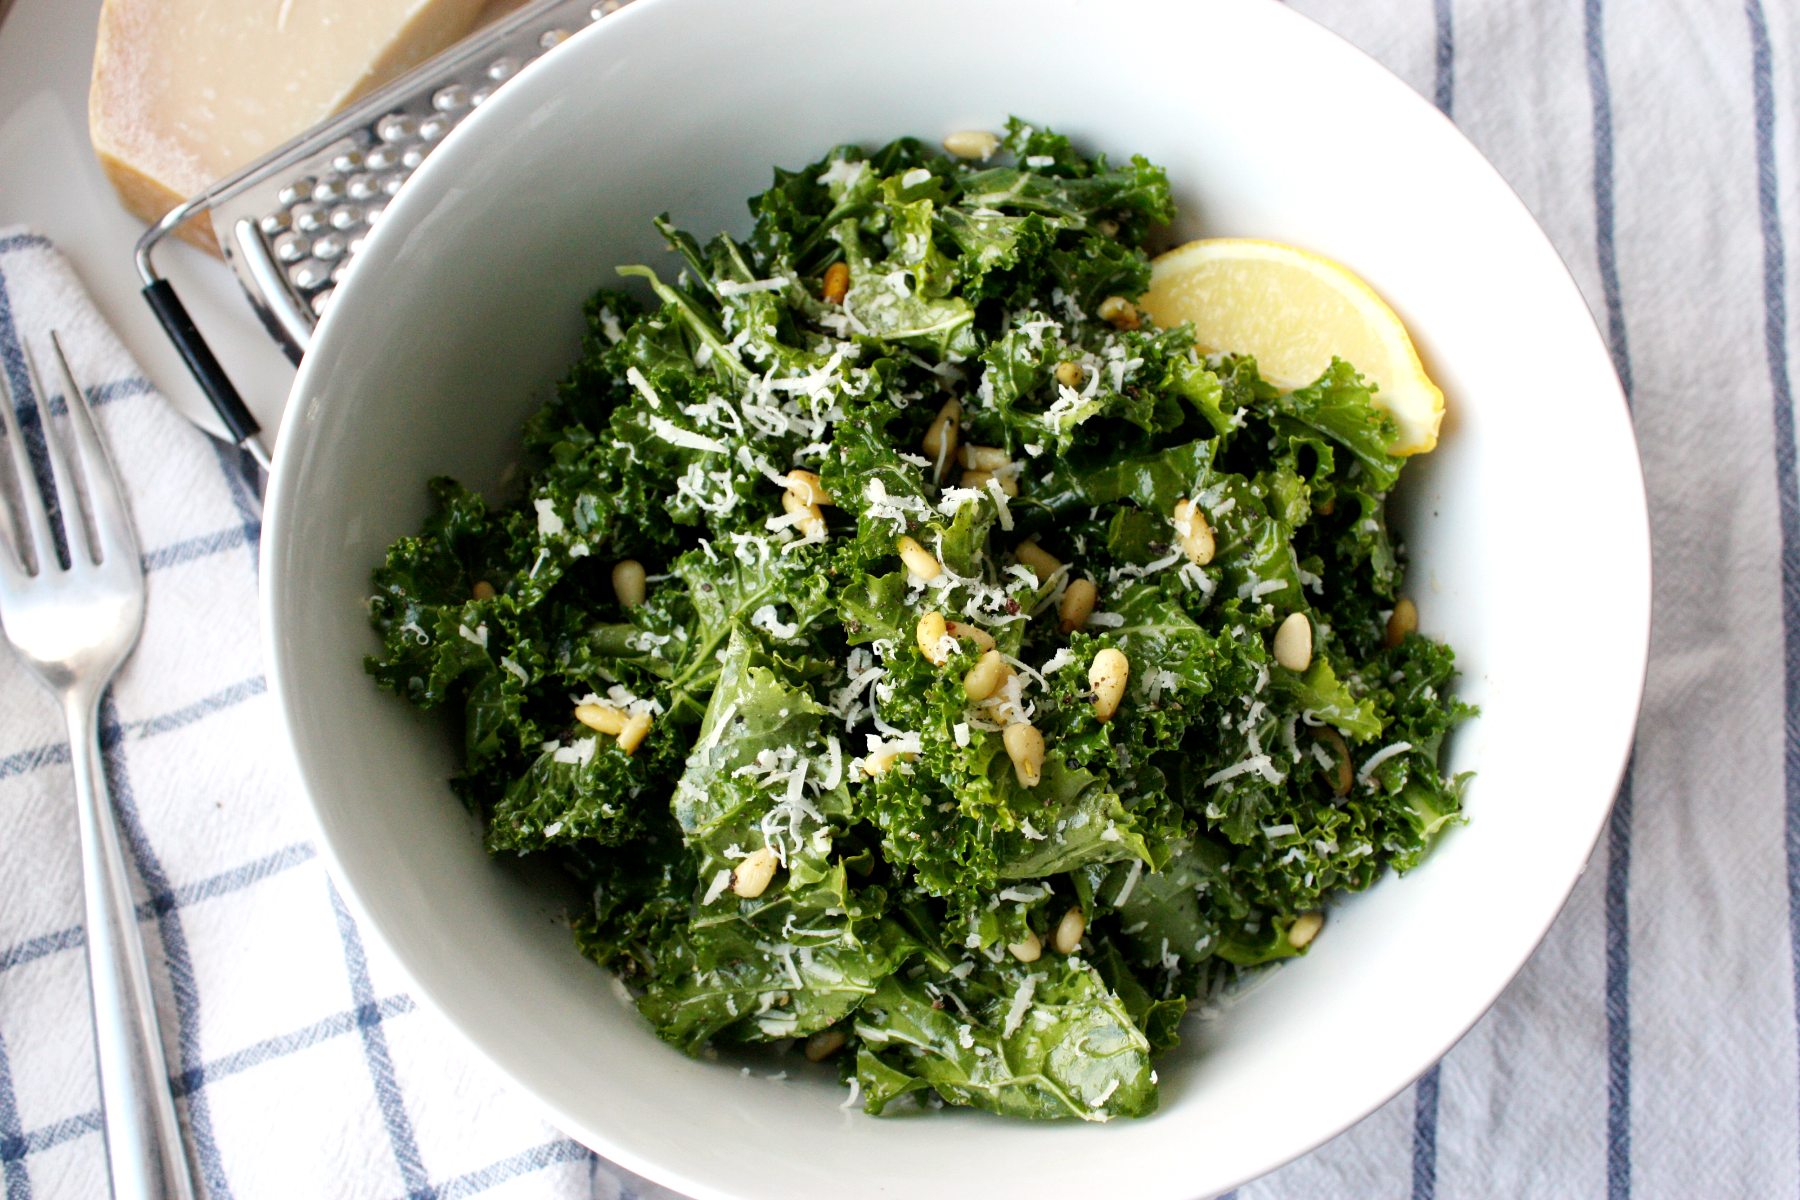 Go-to Parmesan and Pine Nut Kale Salad